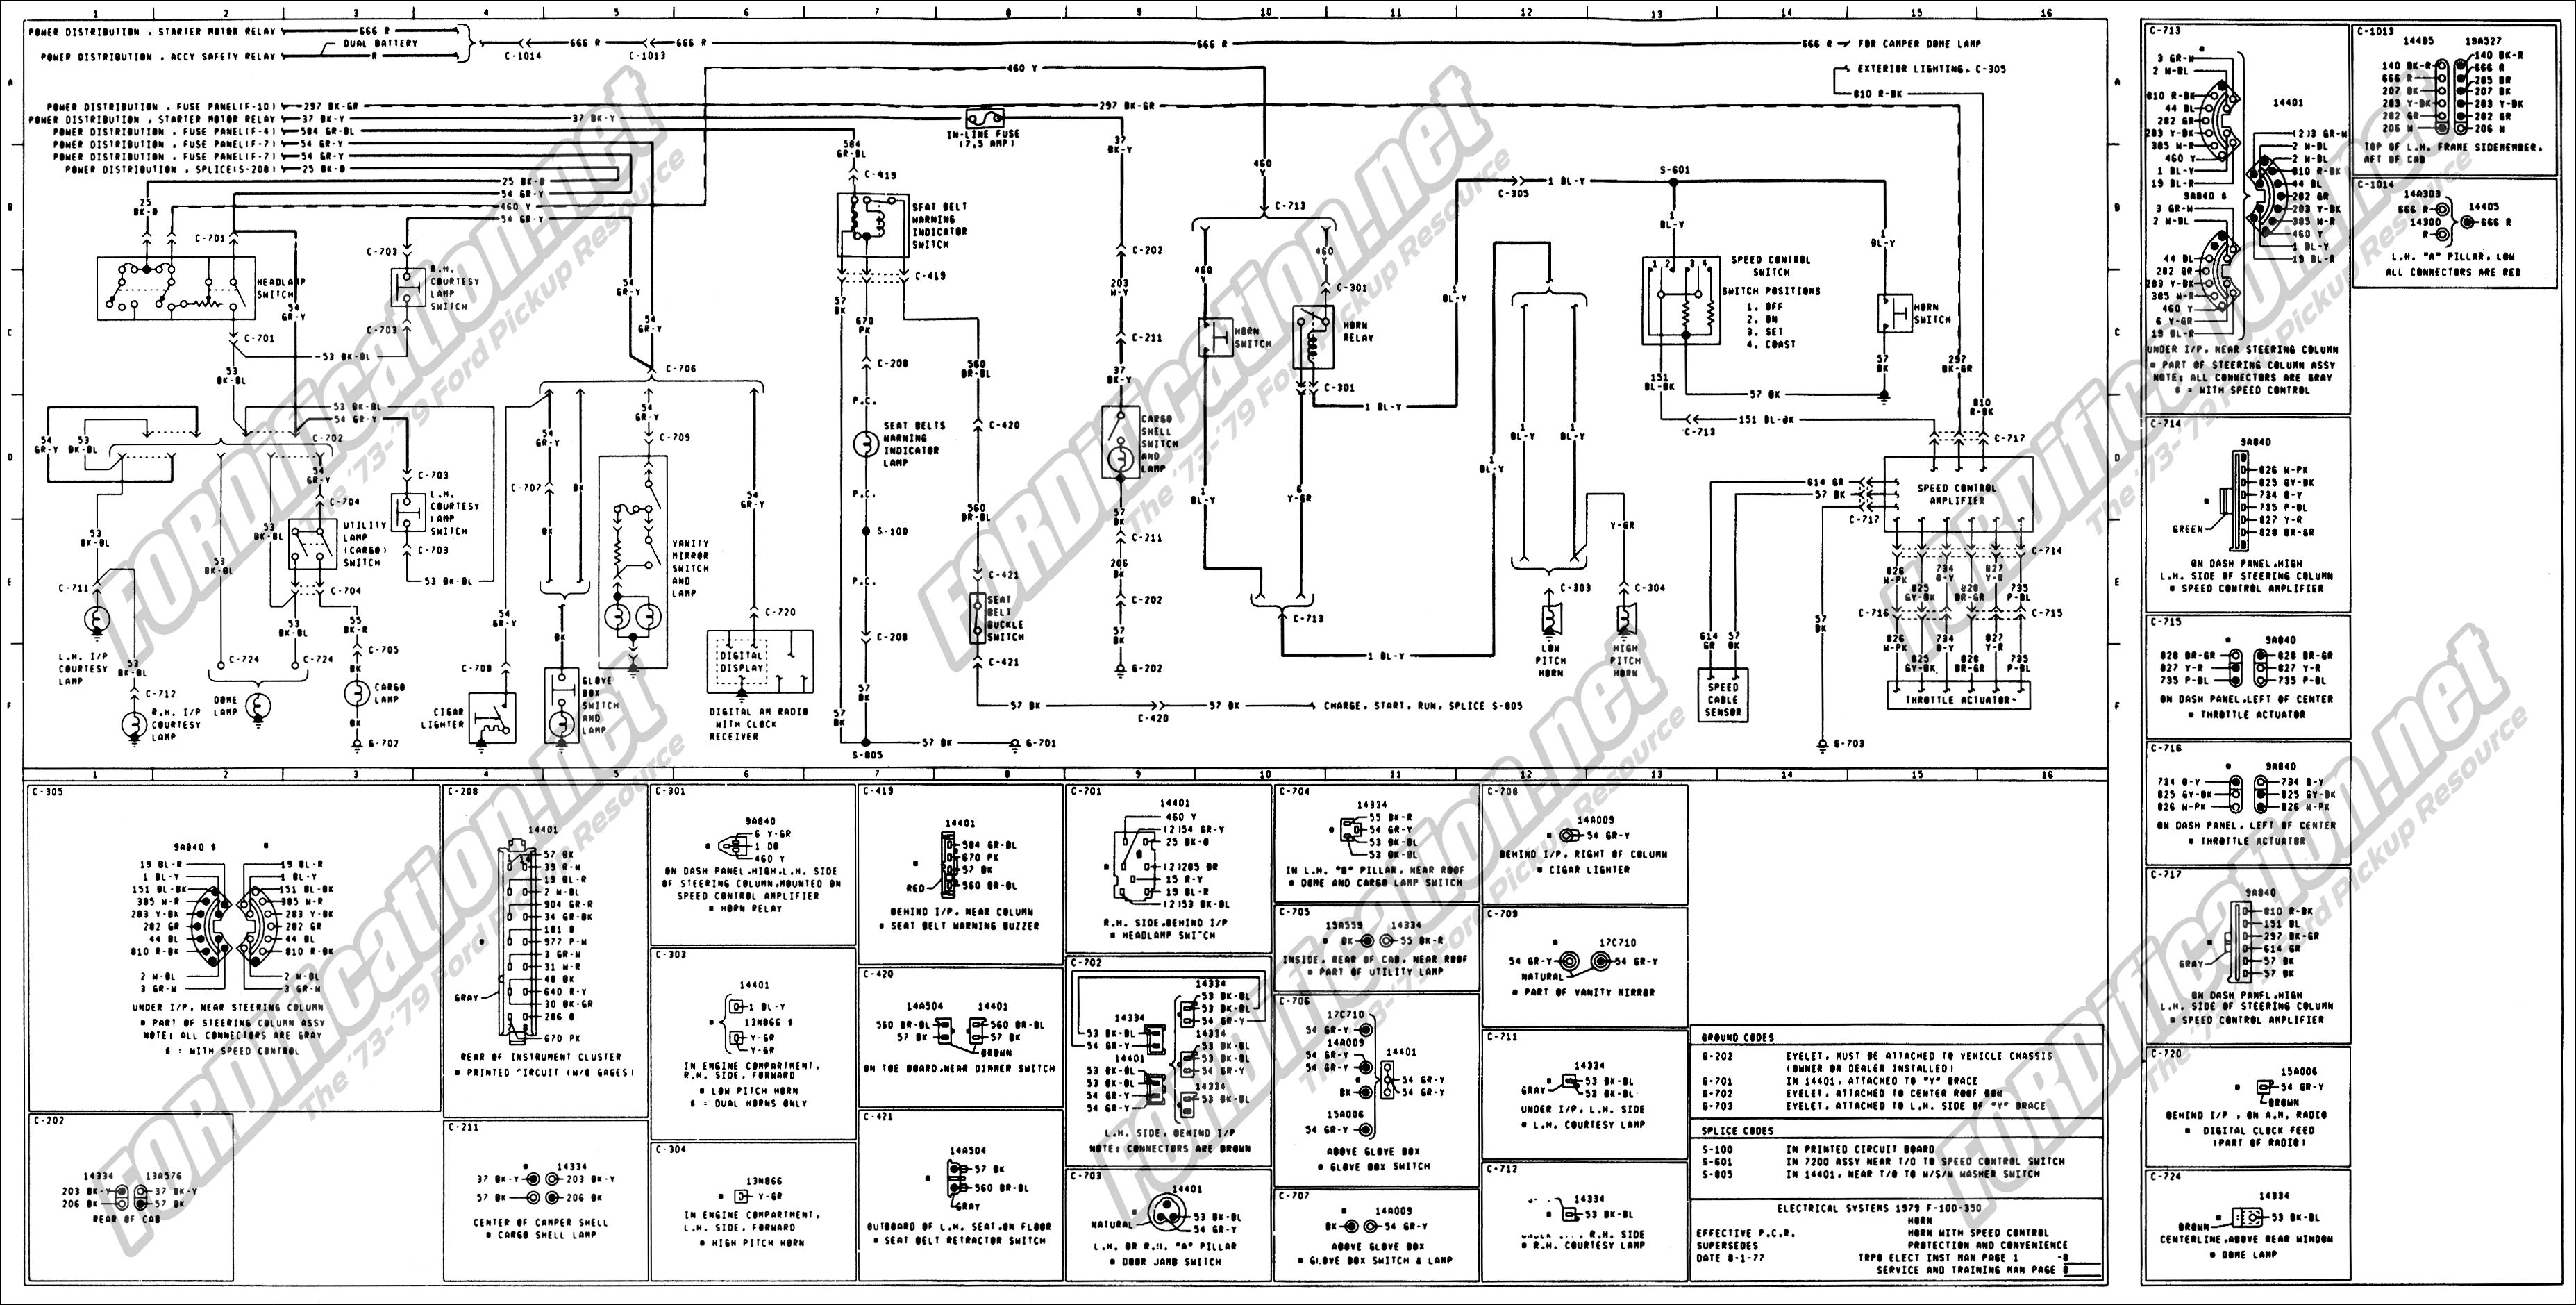 wiring_79master_8of9 2008 f250 stereo wiring harness wiring diagram simonand ford f250 wiring diagram at nearapp.co